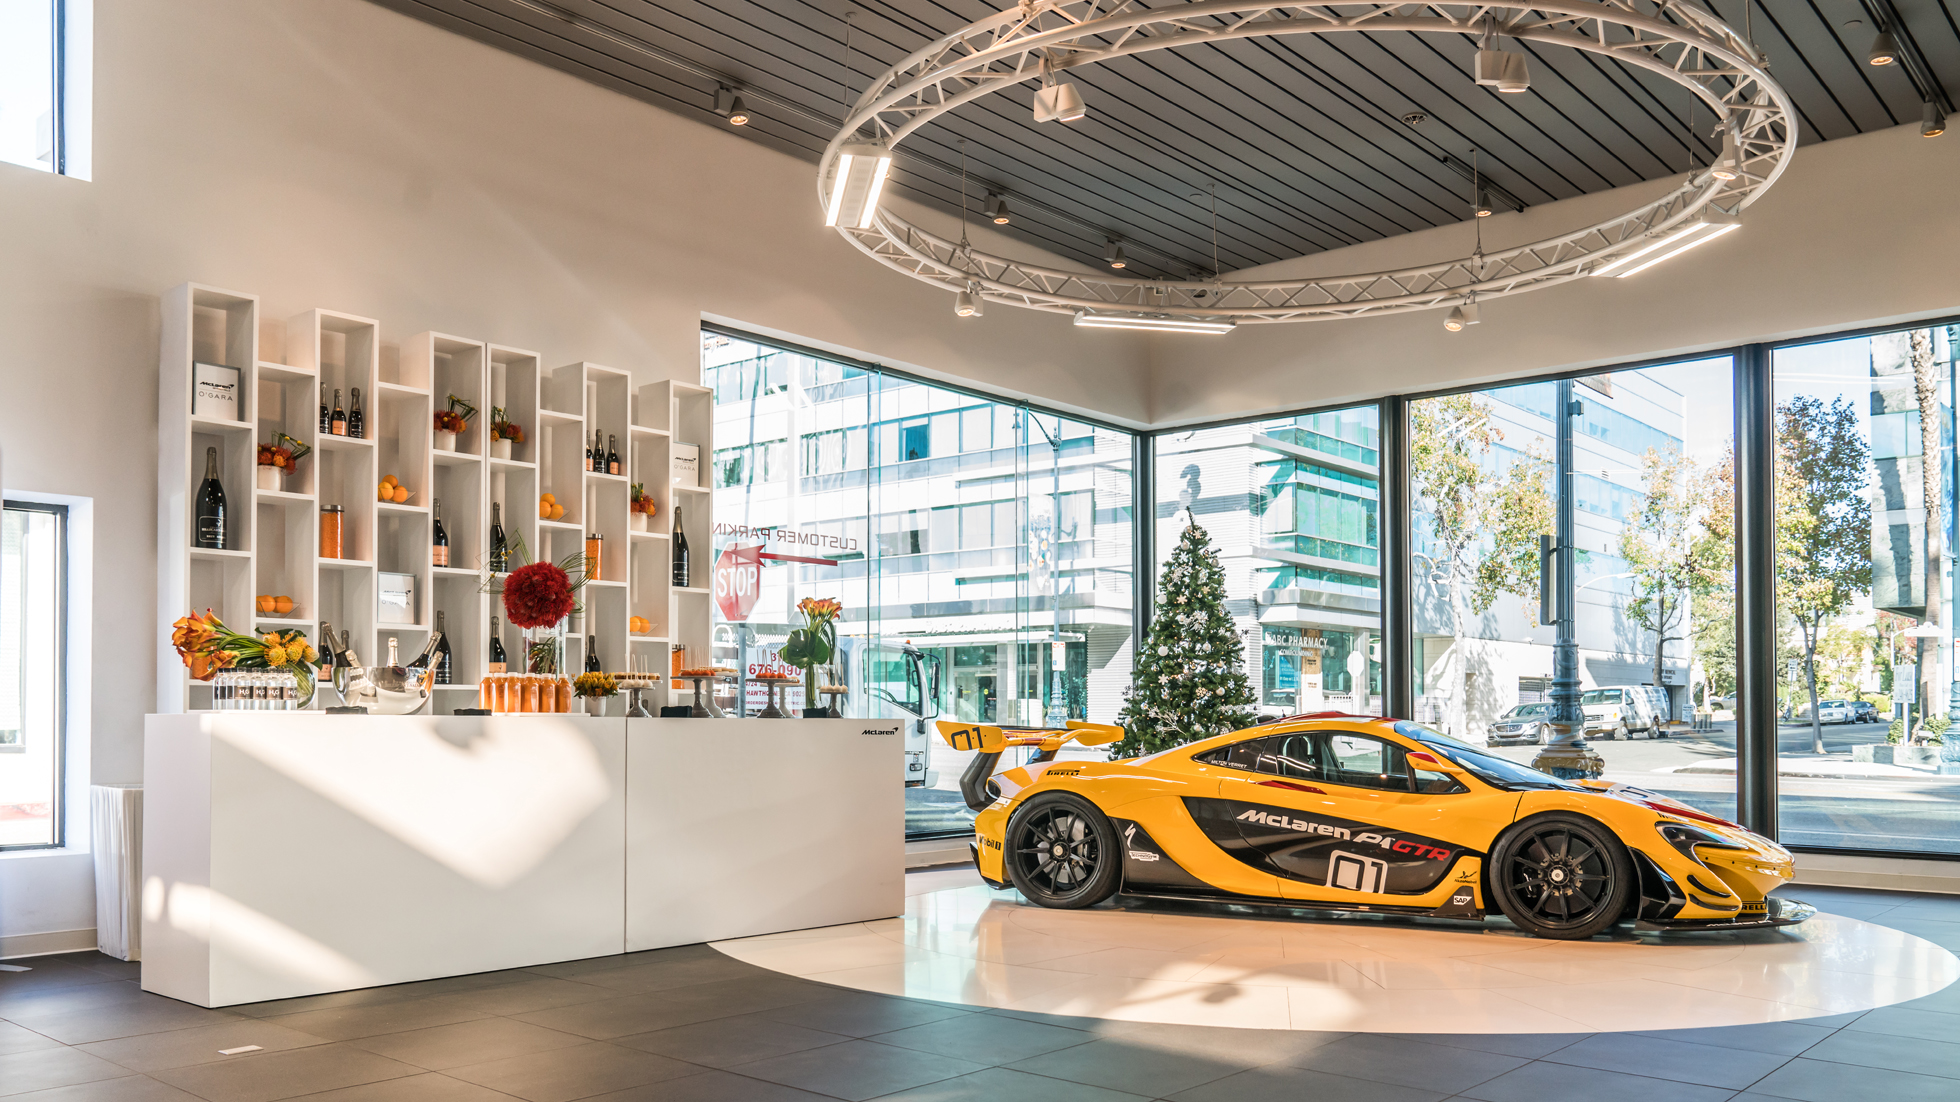 Mclaren Beverly Hills >> Mclaren Beverly Hills Archives Page 7 Of 7 O Gara Blog